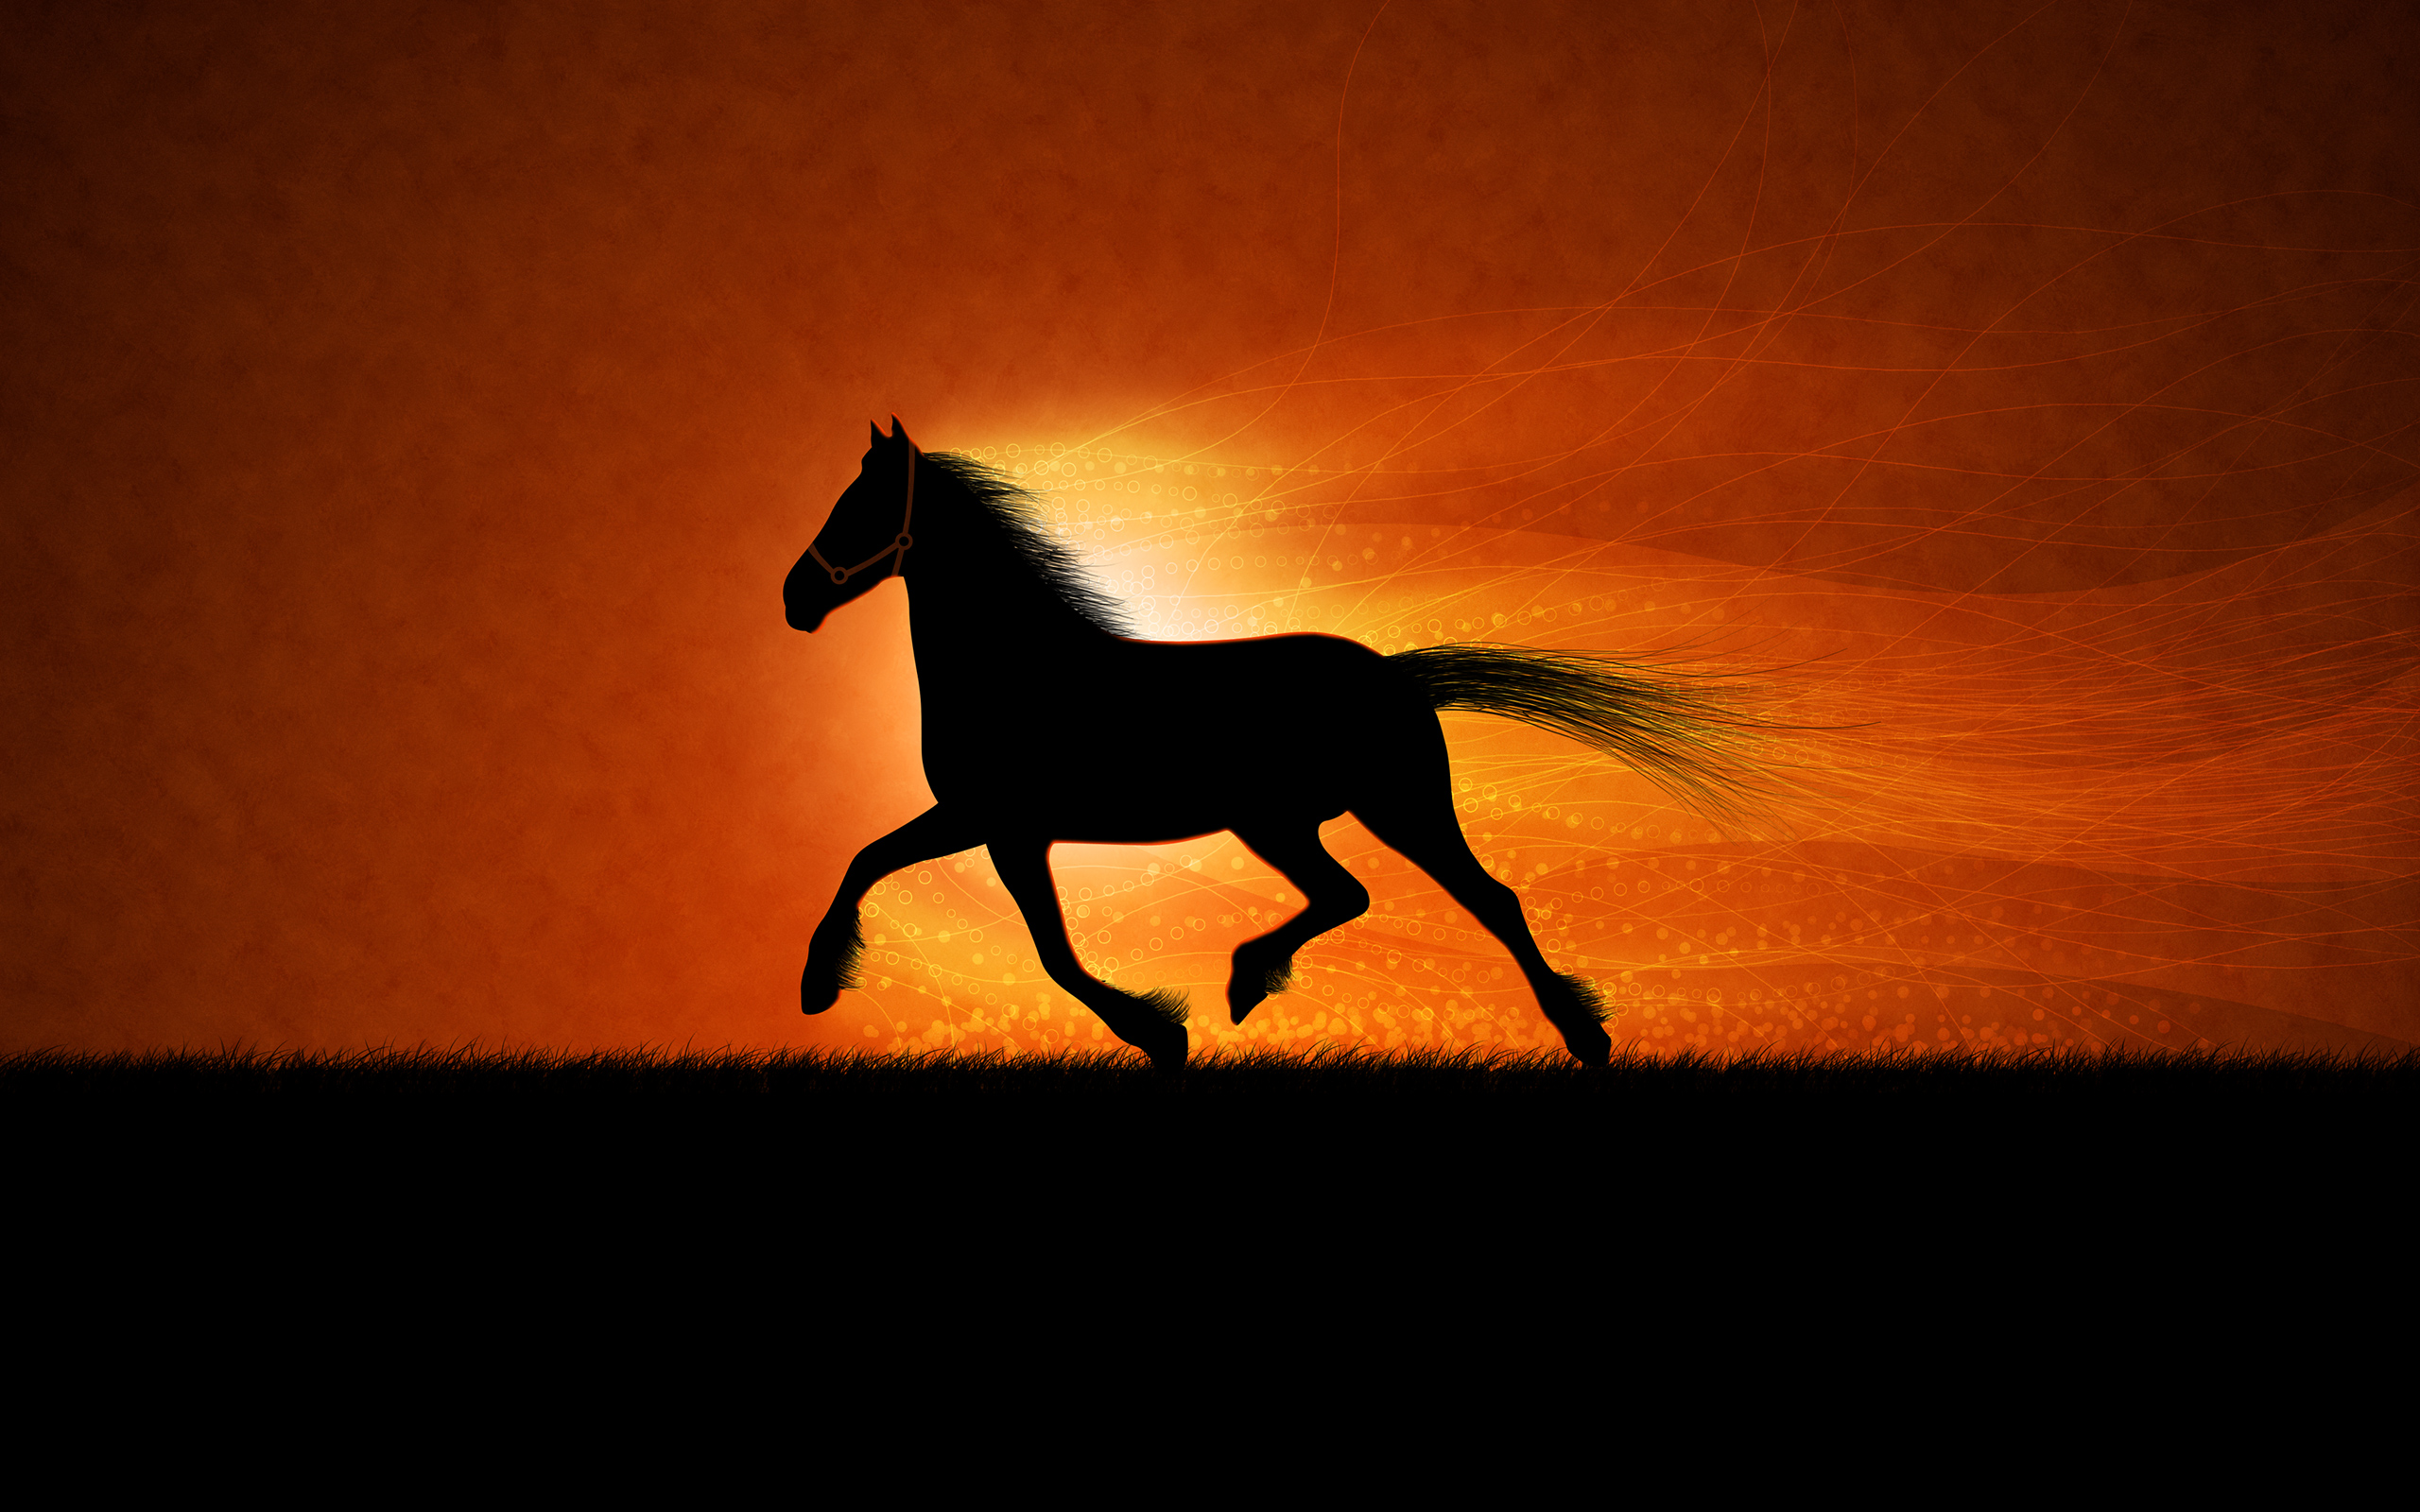 Free Download Running Horse Wallpapers Hd Wallpapers